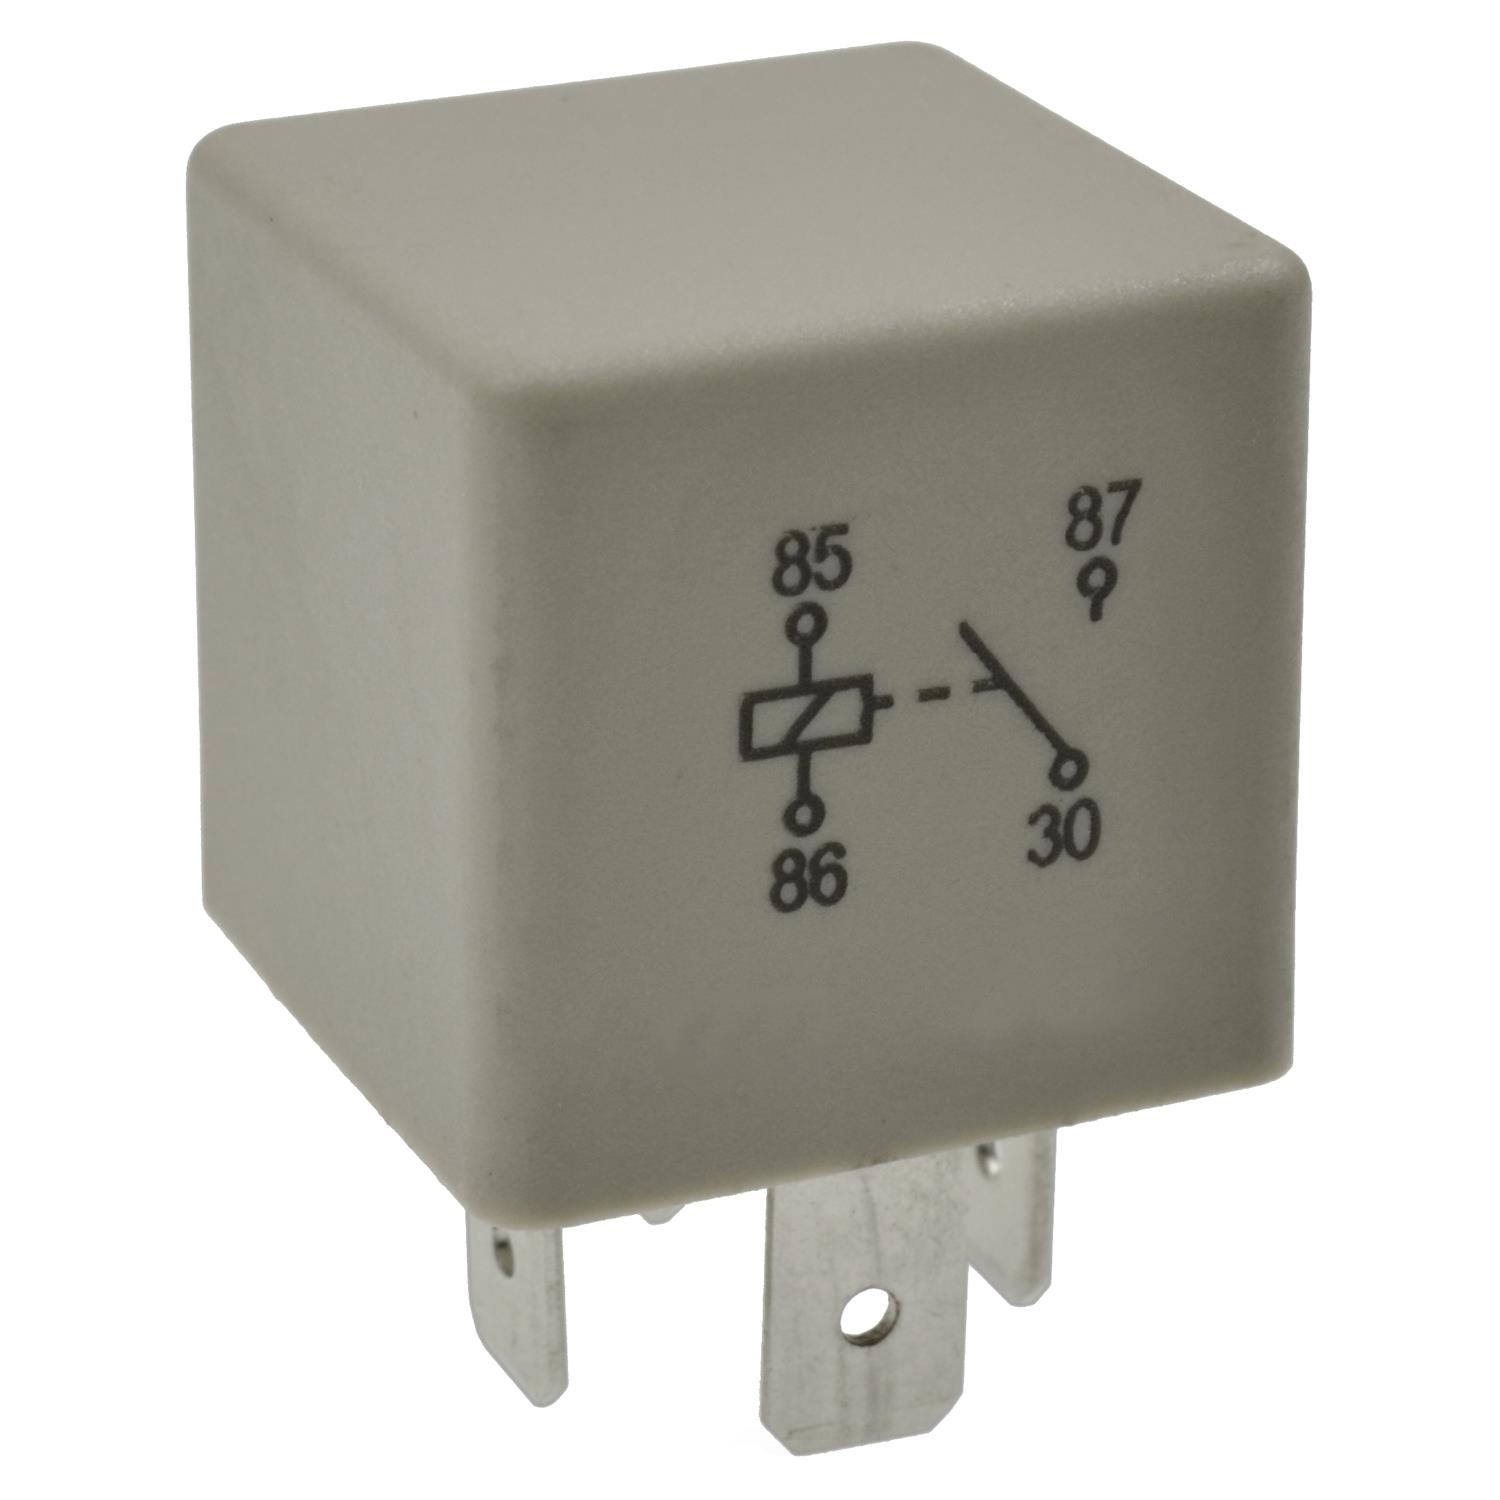 STANDARD T-SERIES - Sunroof Relay - STT RY265T